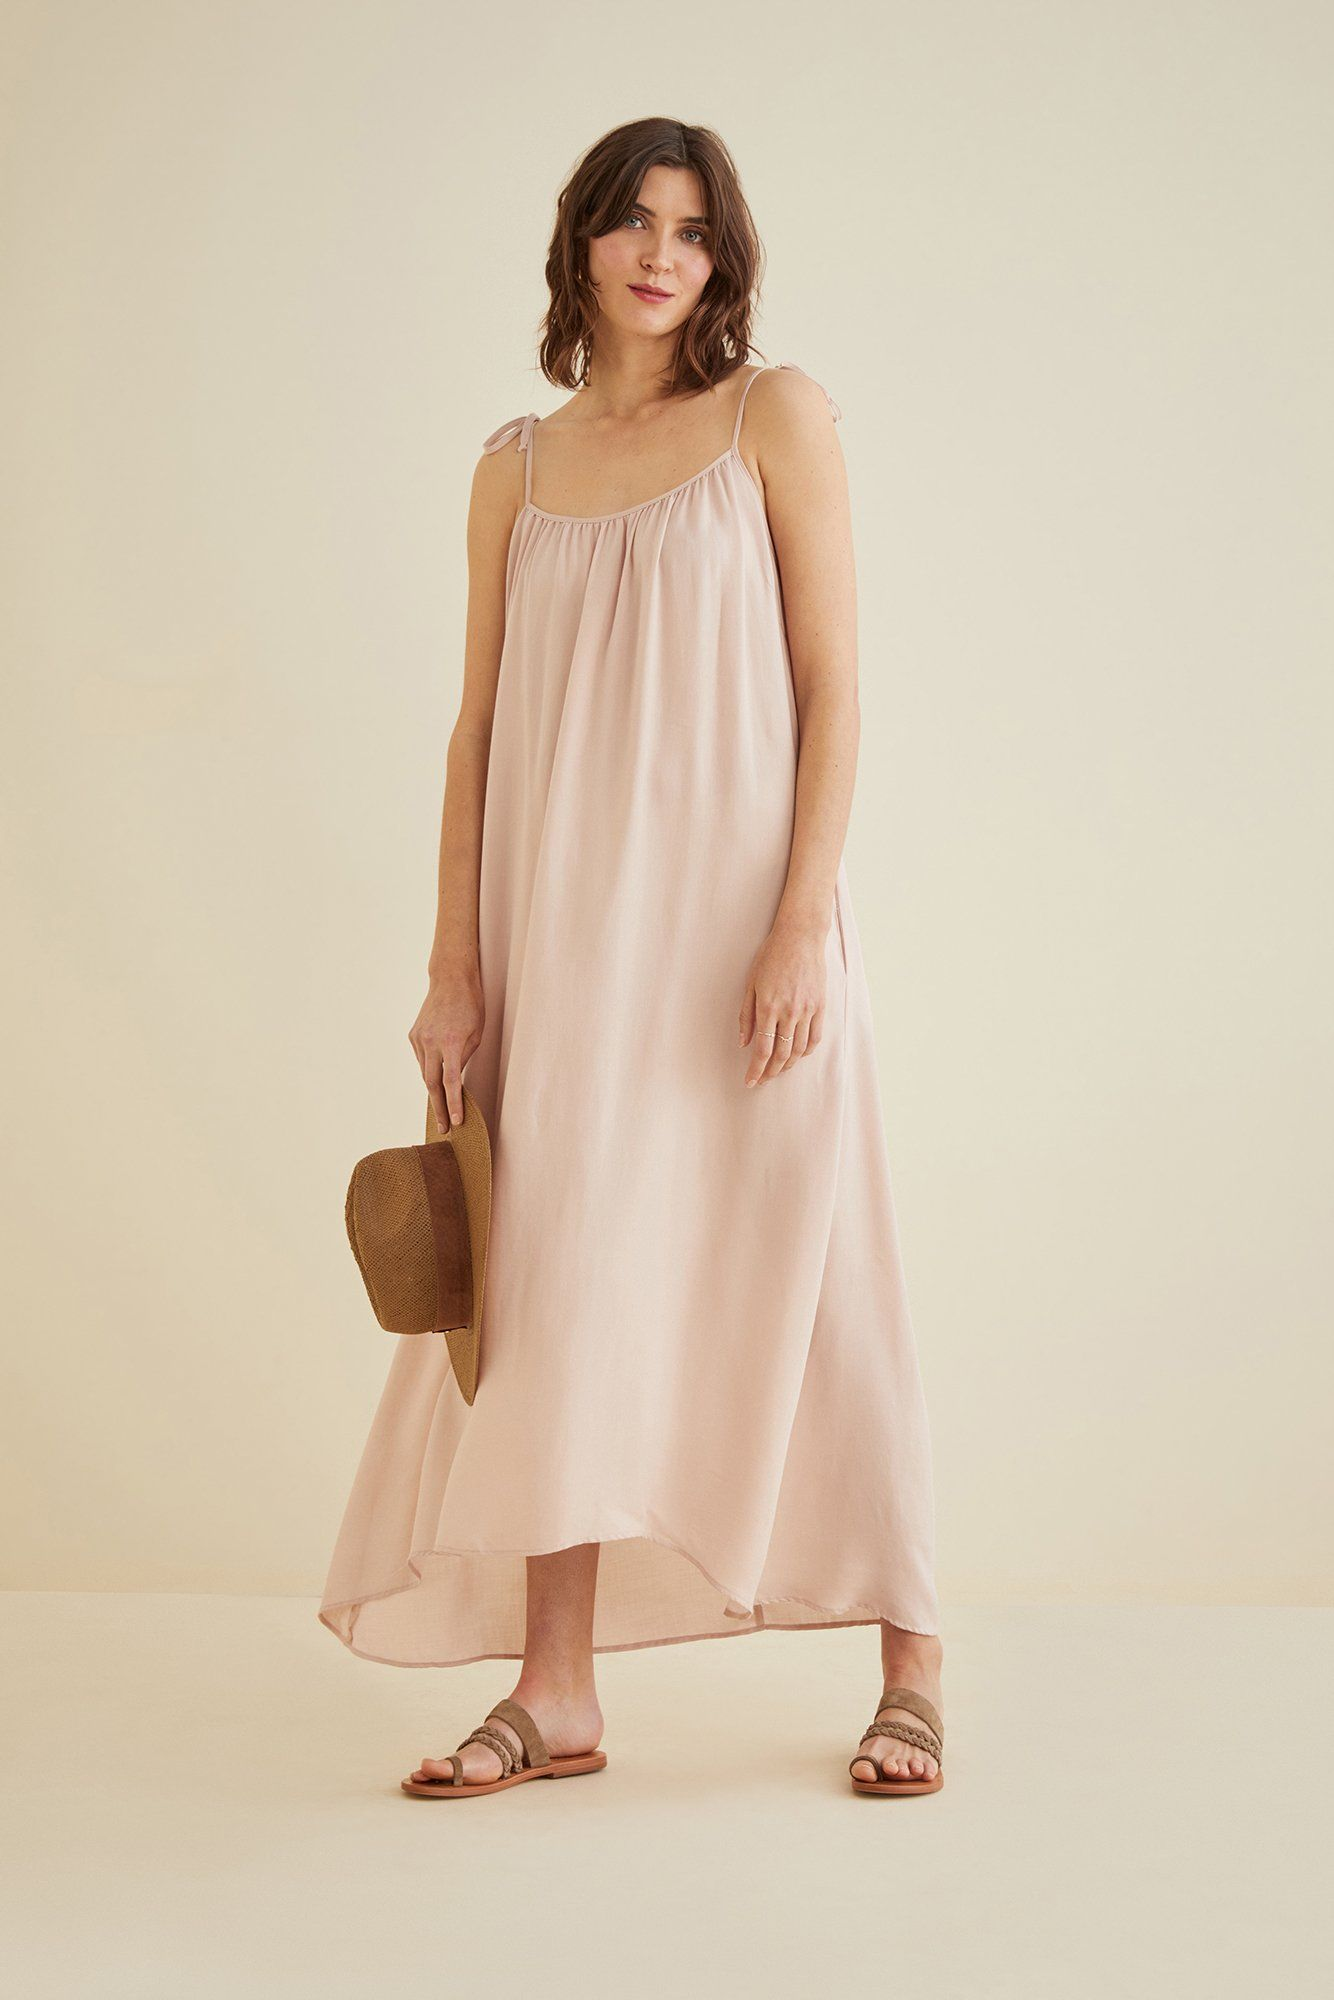 Pin By Jenny Redford On Summer Dresses Blush Dresses Loose Fitting Dresses [ 2000 x 1334 Pixel ]